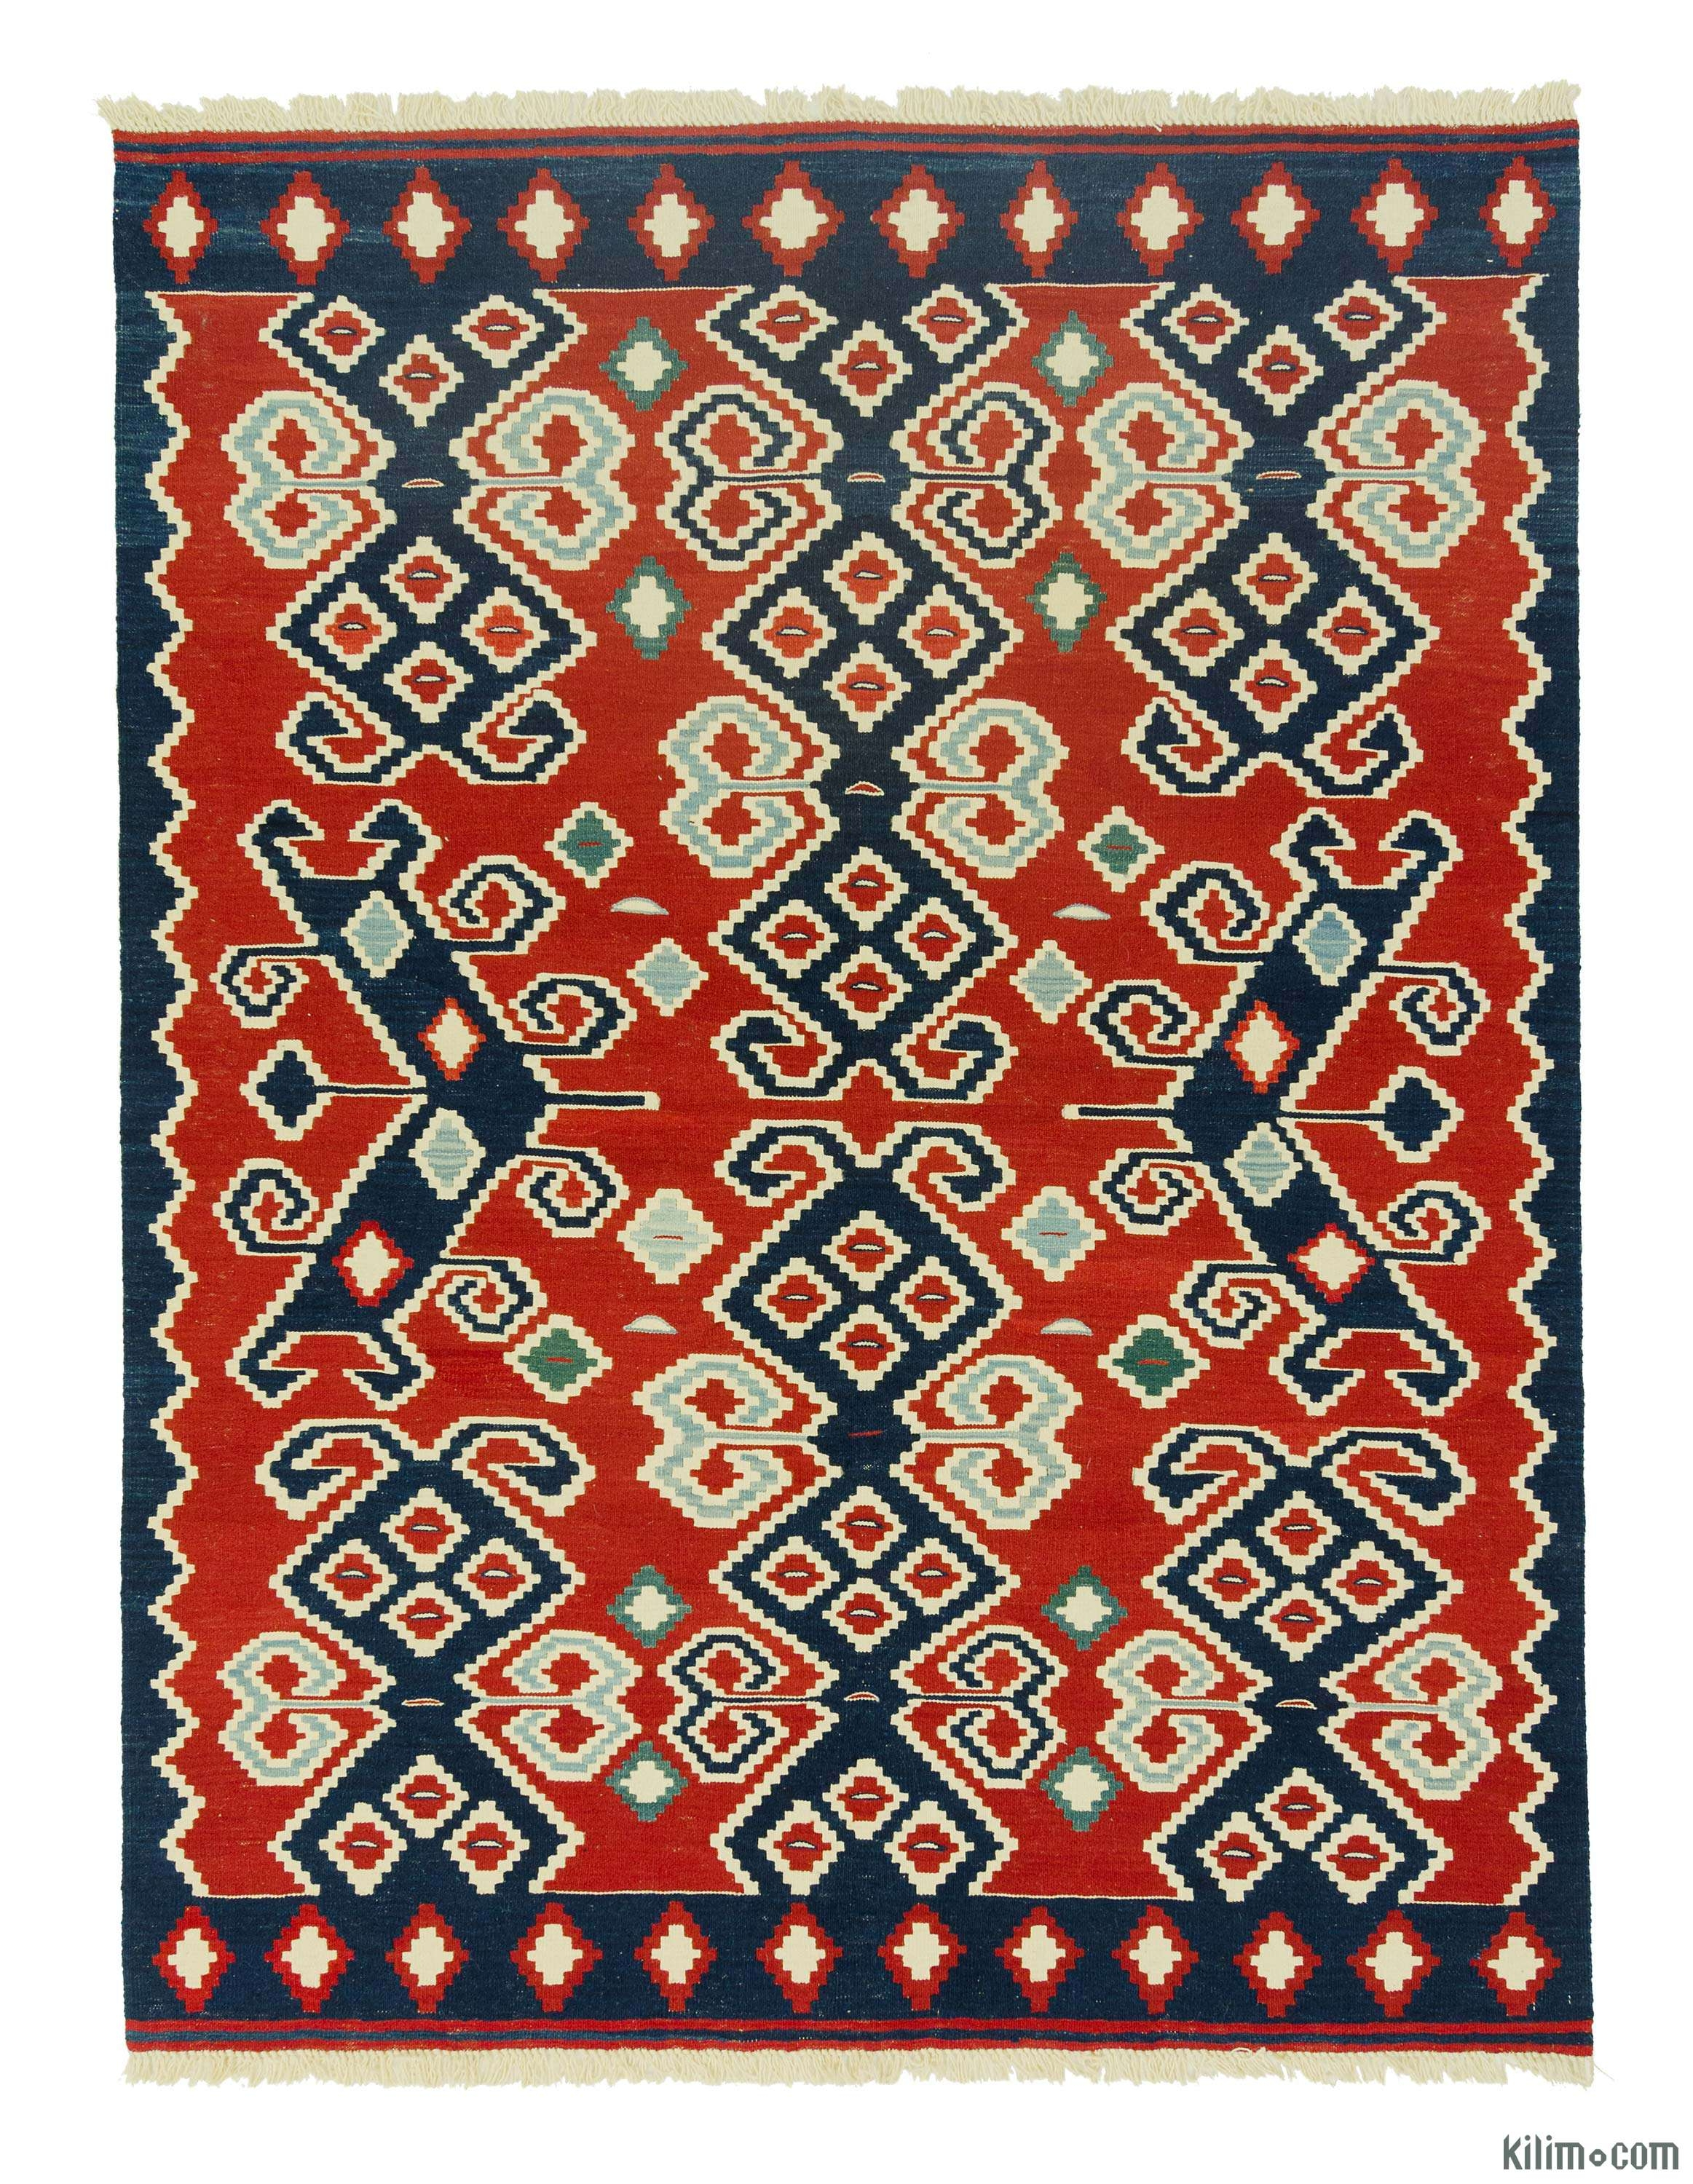 Featured Image of Kilim Rugs